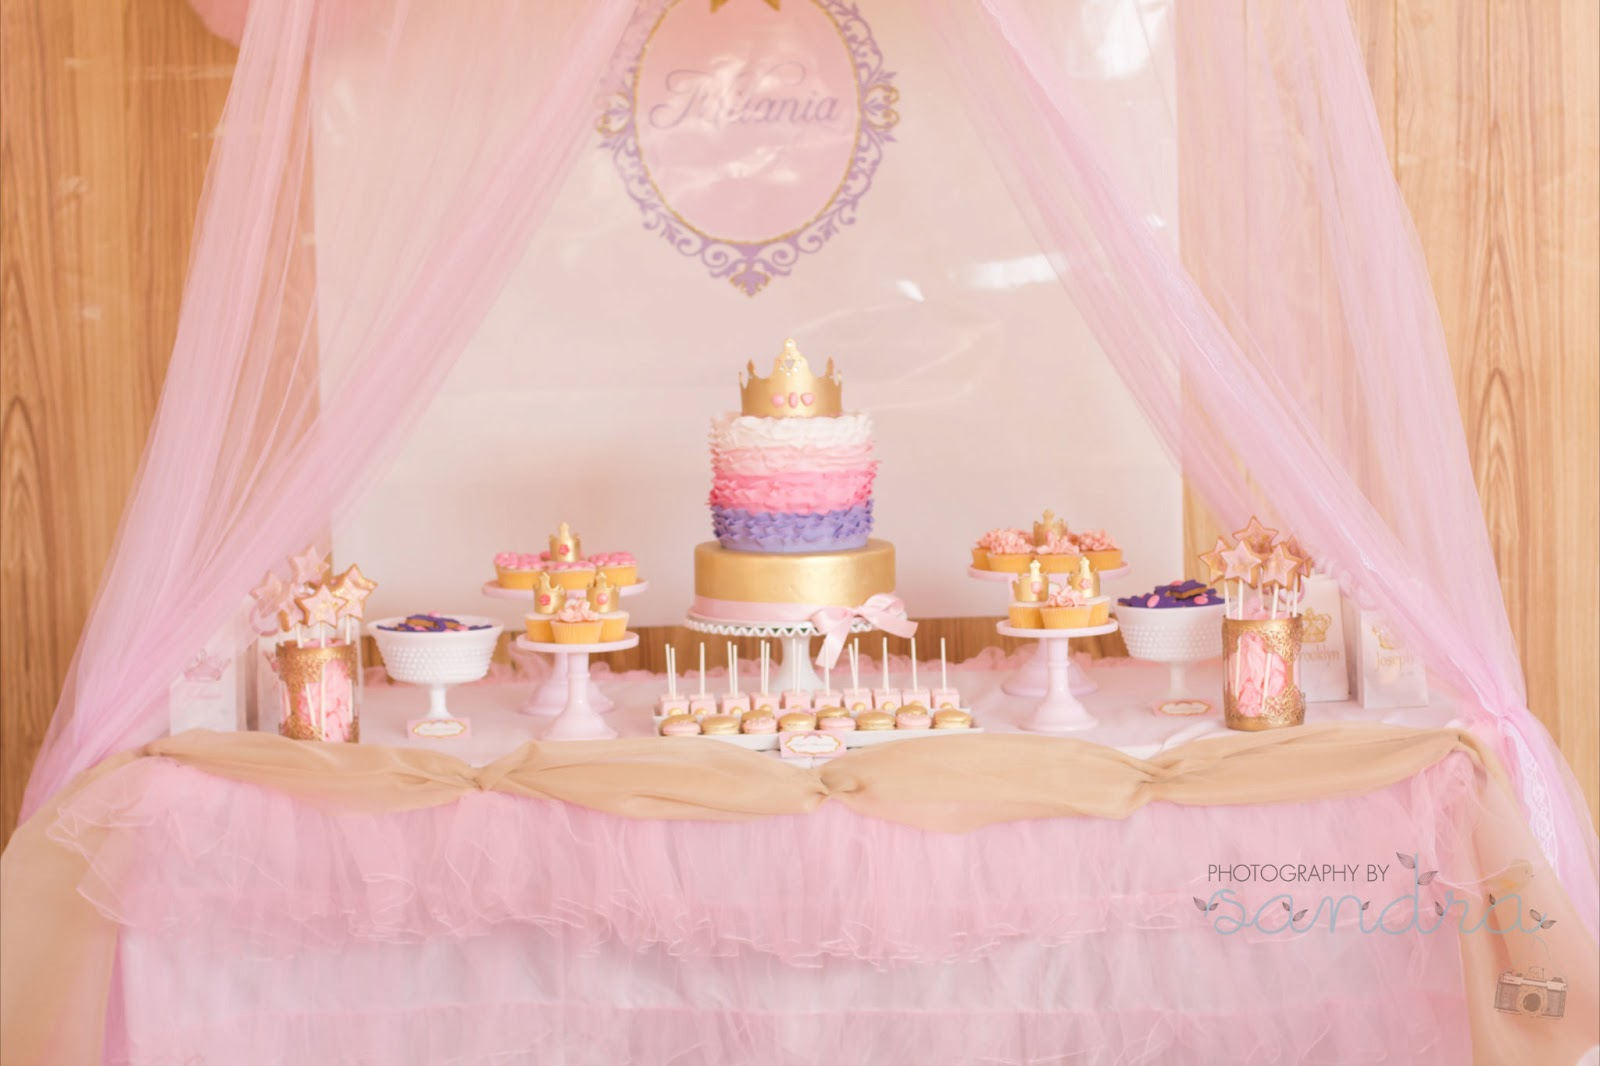 ... Blog: Pink Royal Princess Party for Milanias 1st Birthday by Natalie